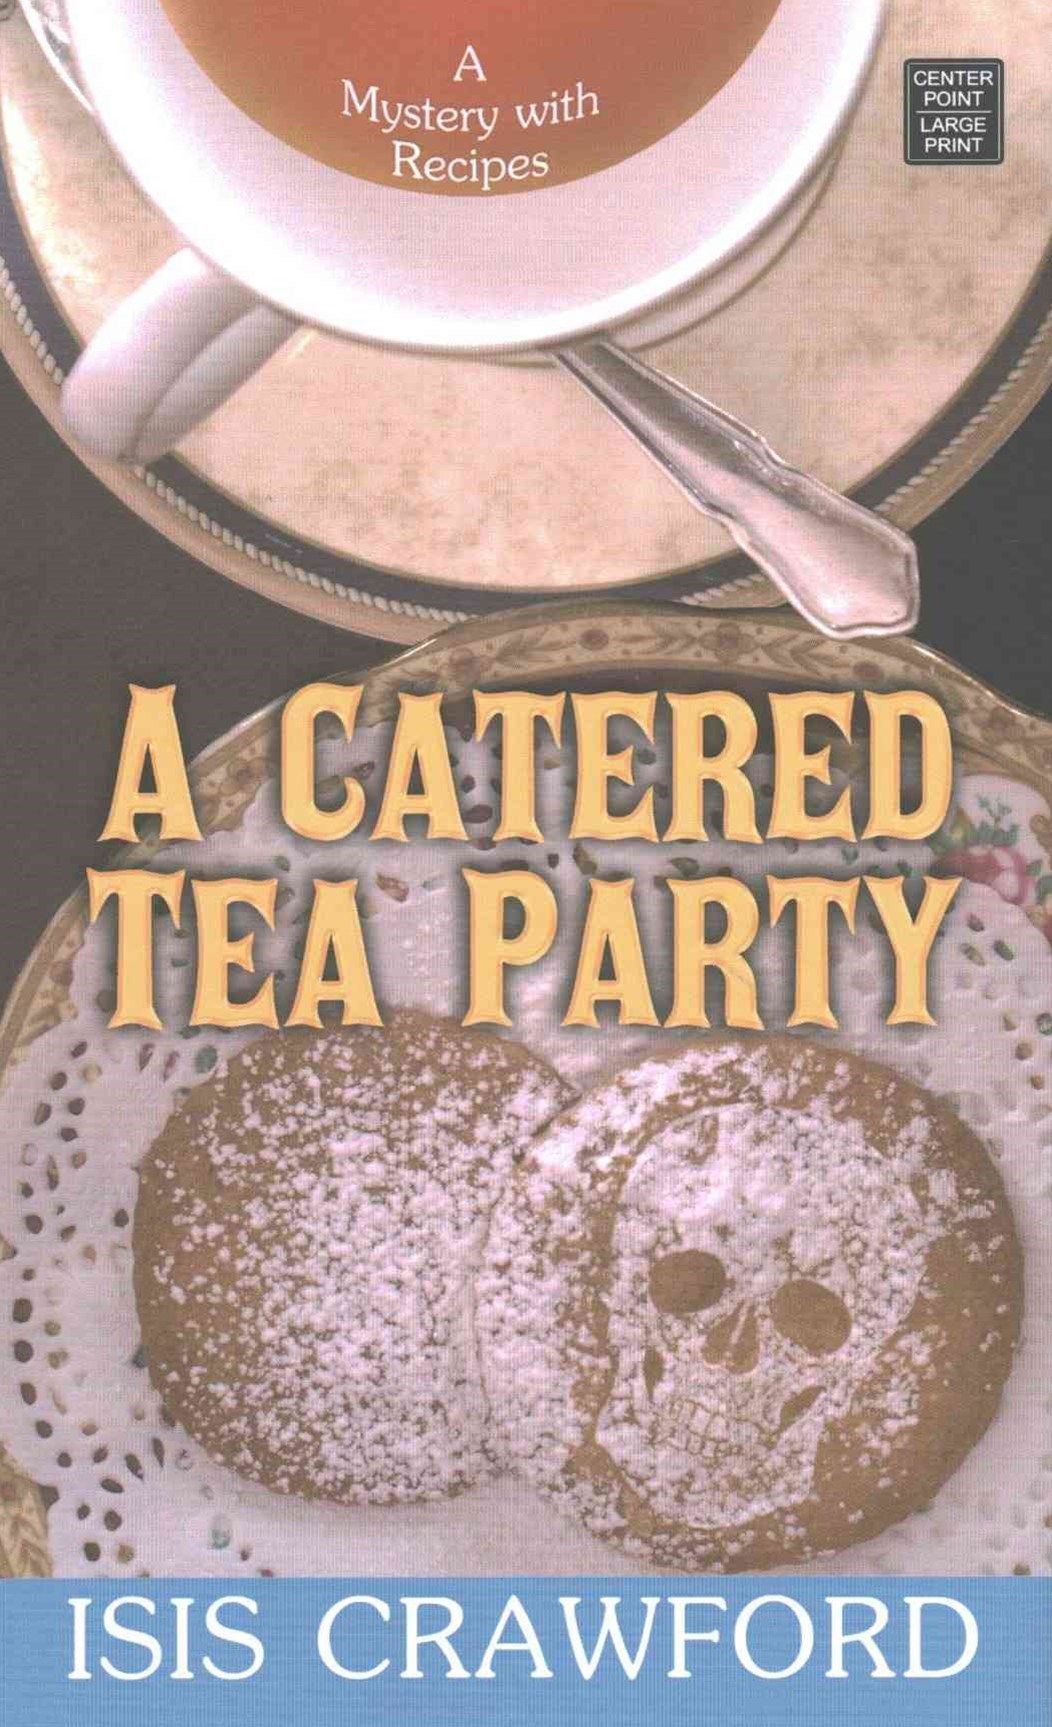 A Catered Tea Party